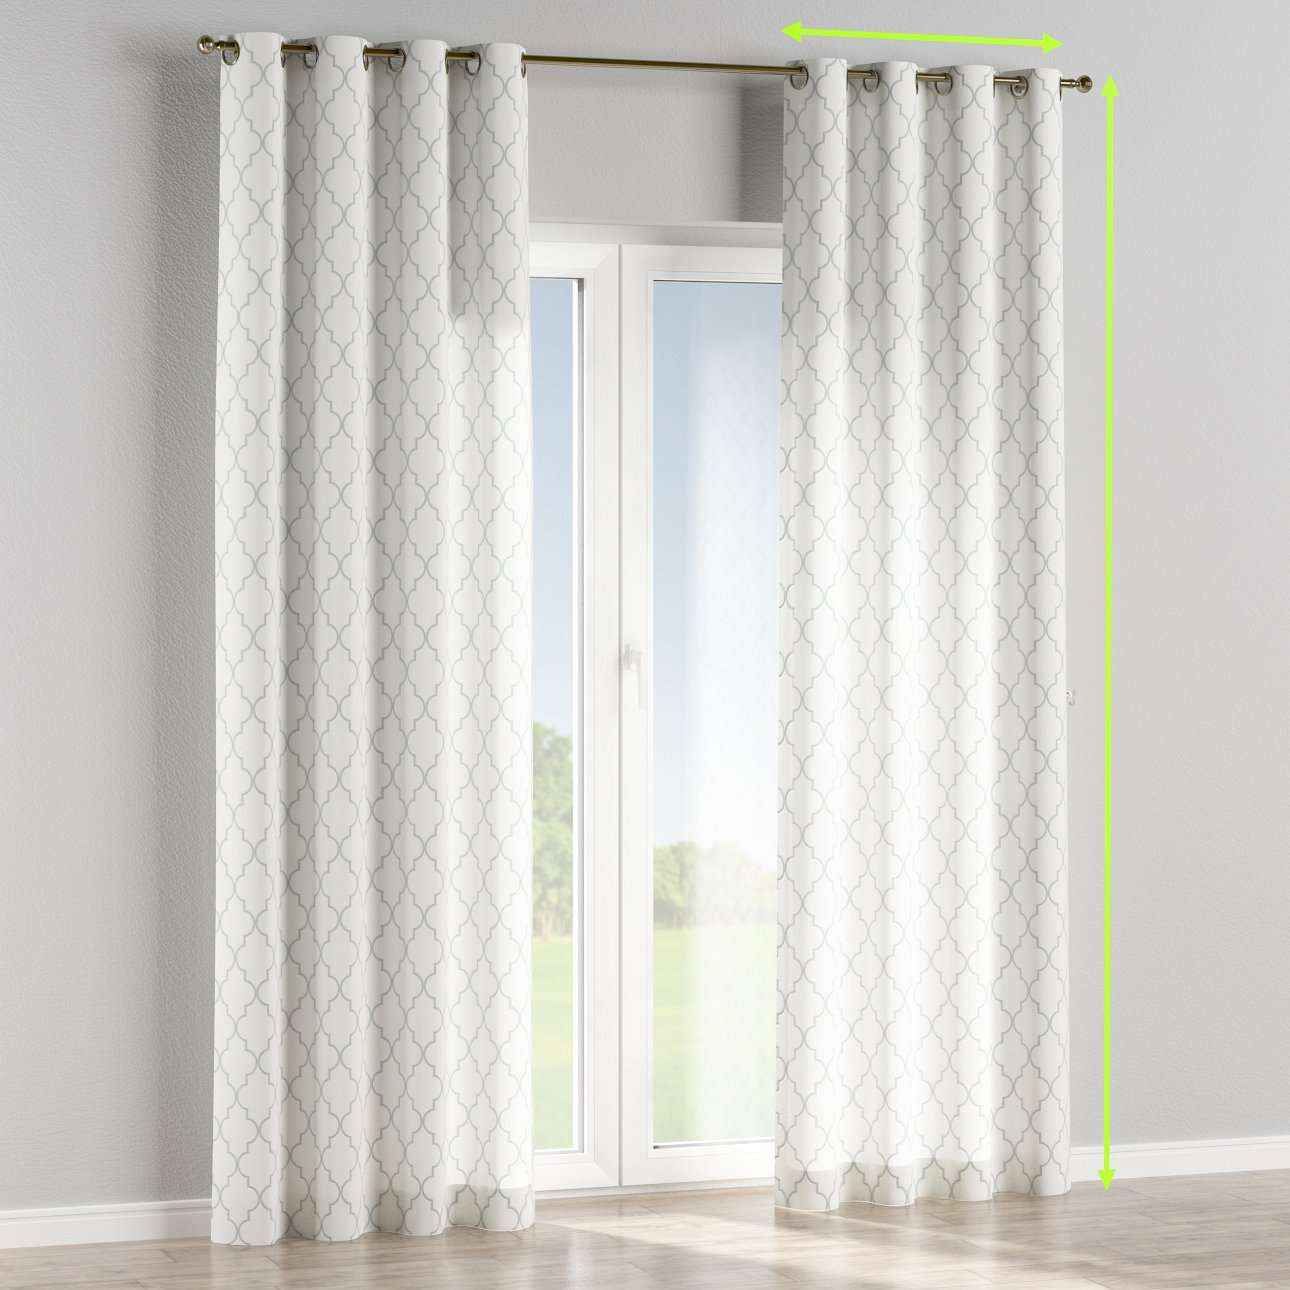 Eyelet lined curtains in collection Comic Book & Geo Prints, fabric: 137-85